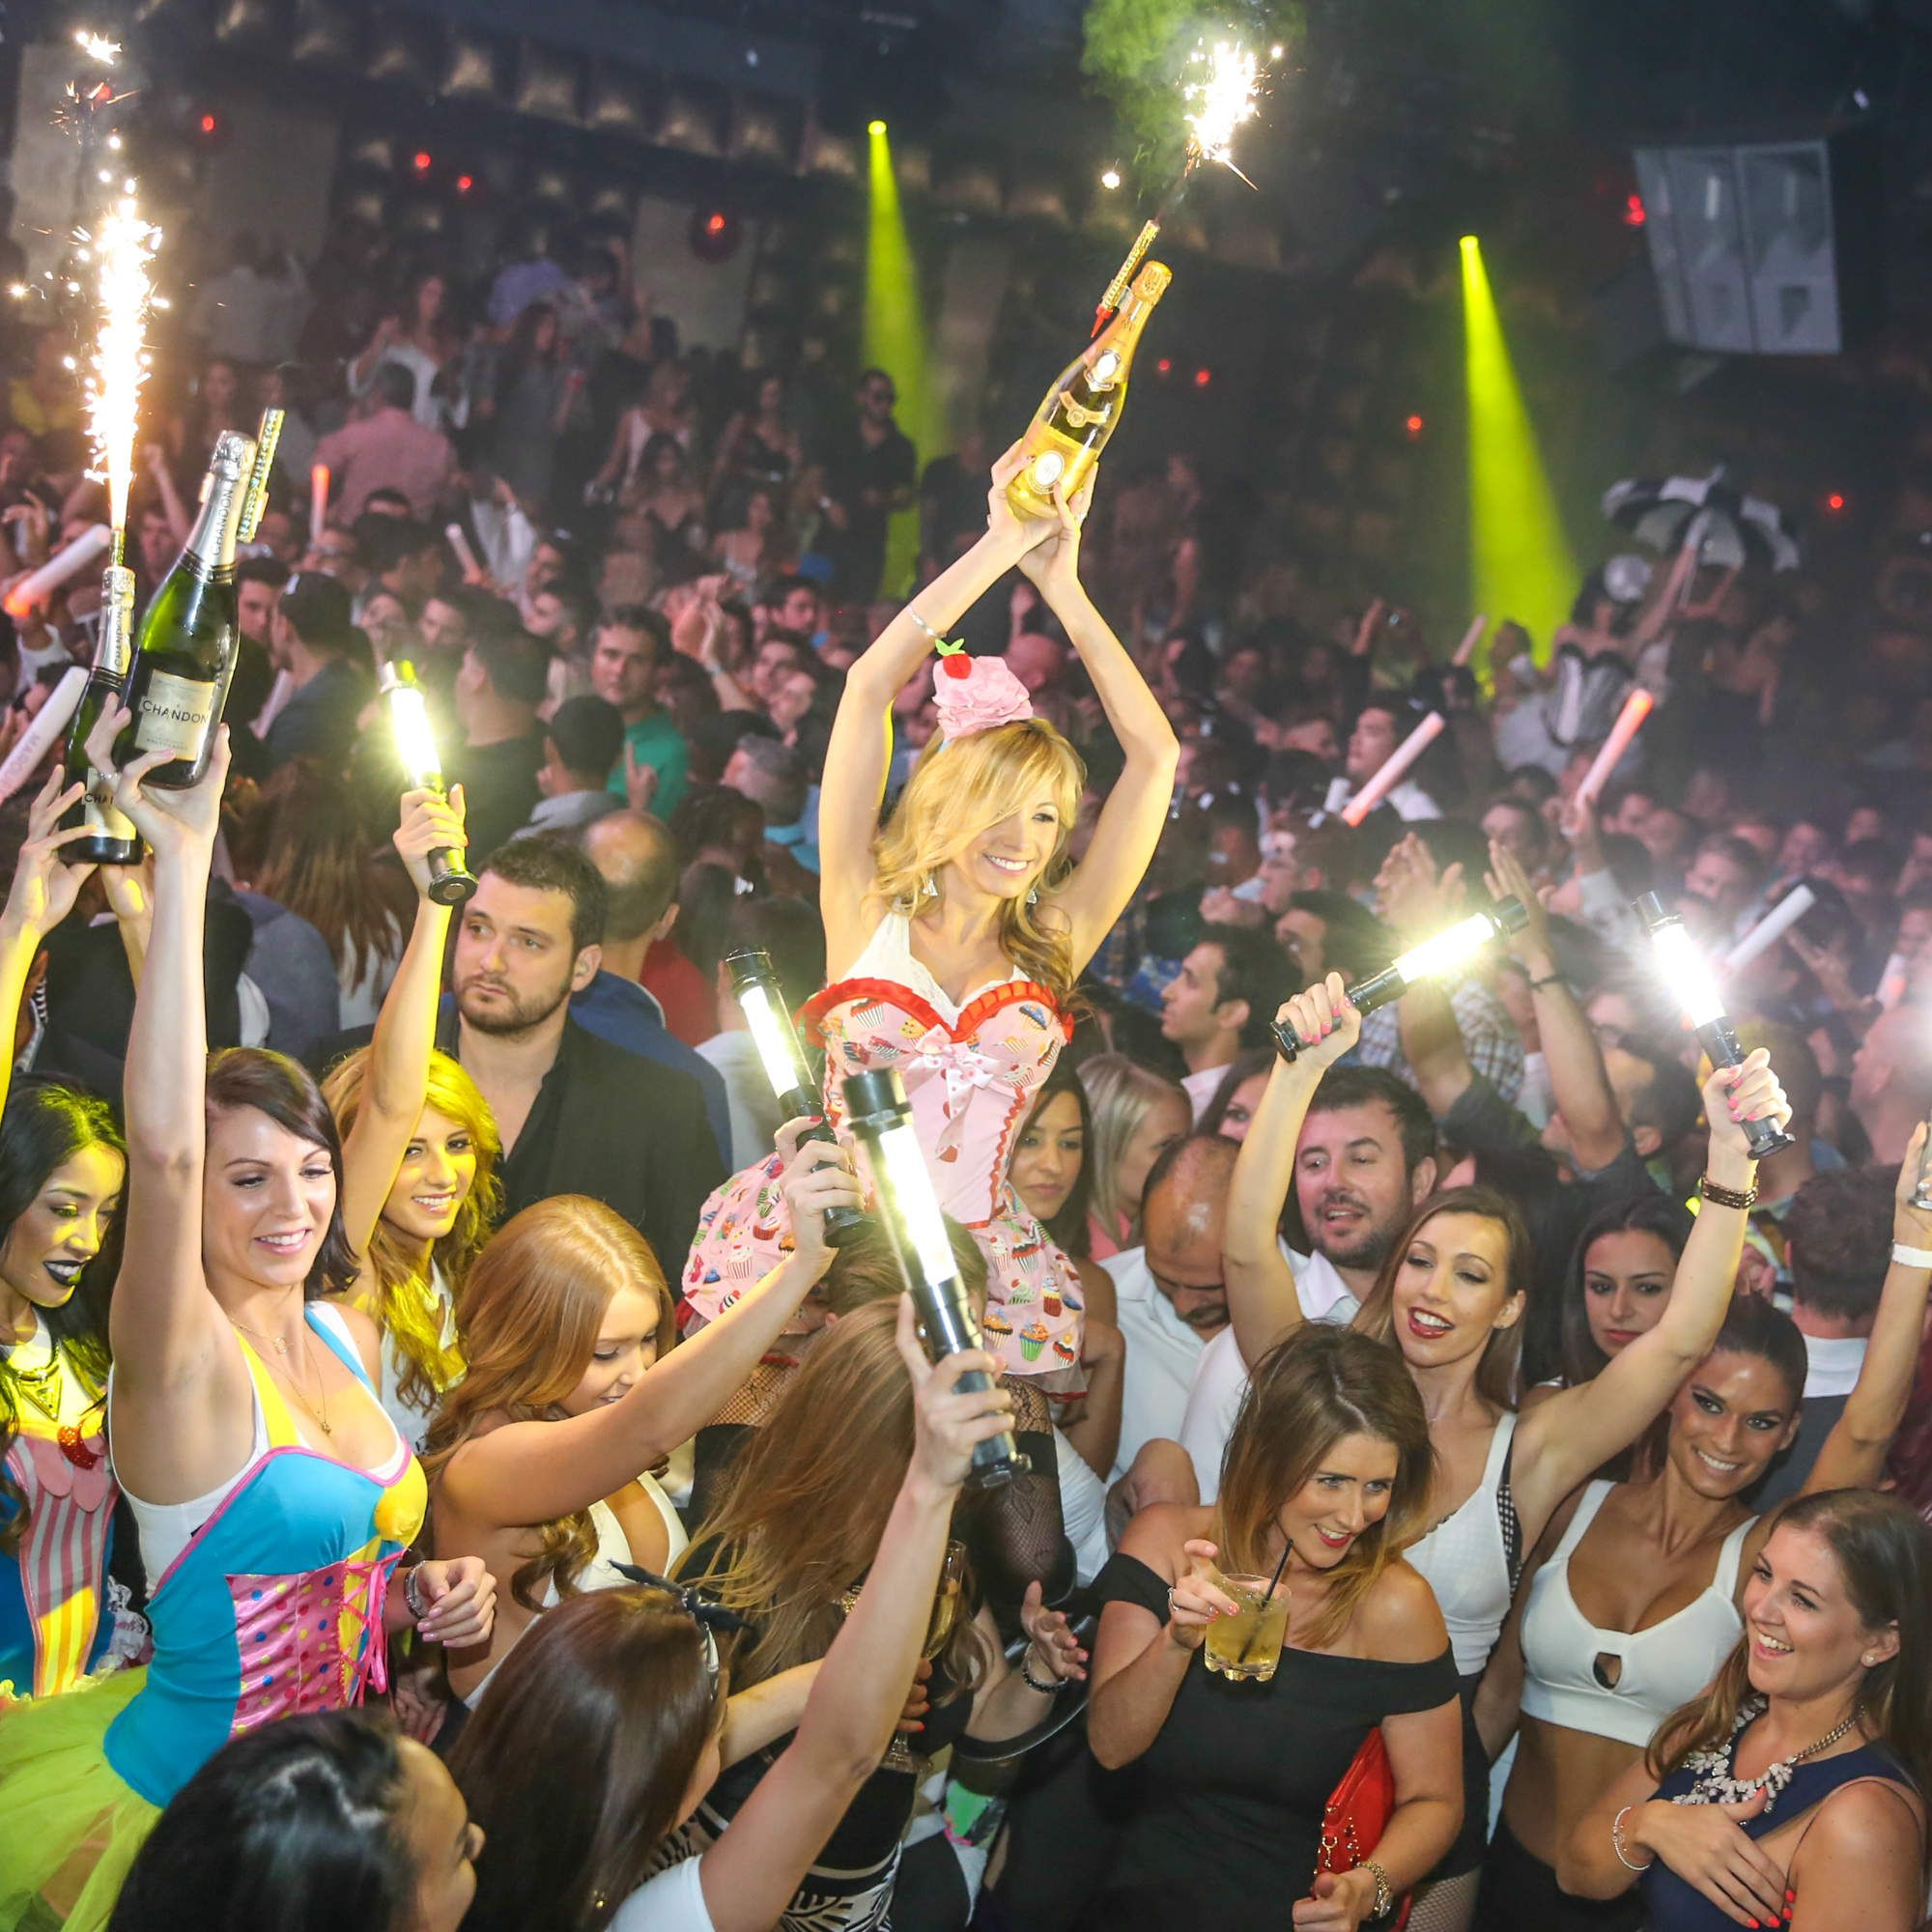 The 15 Best Nightclubs in Las Vegas - Foursquare